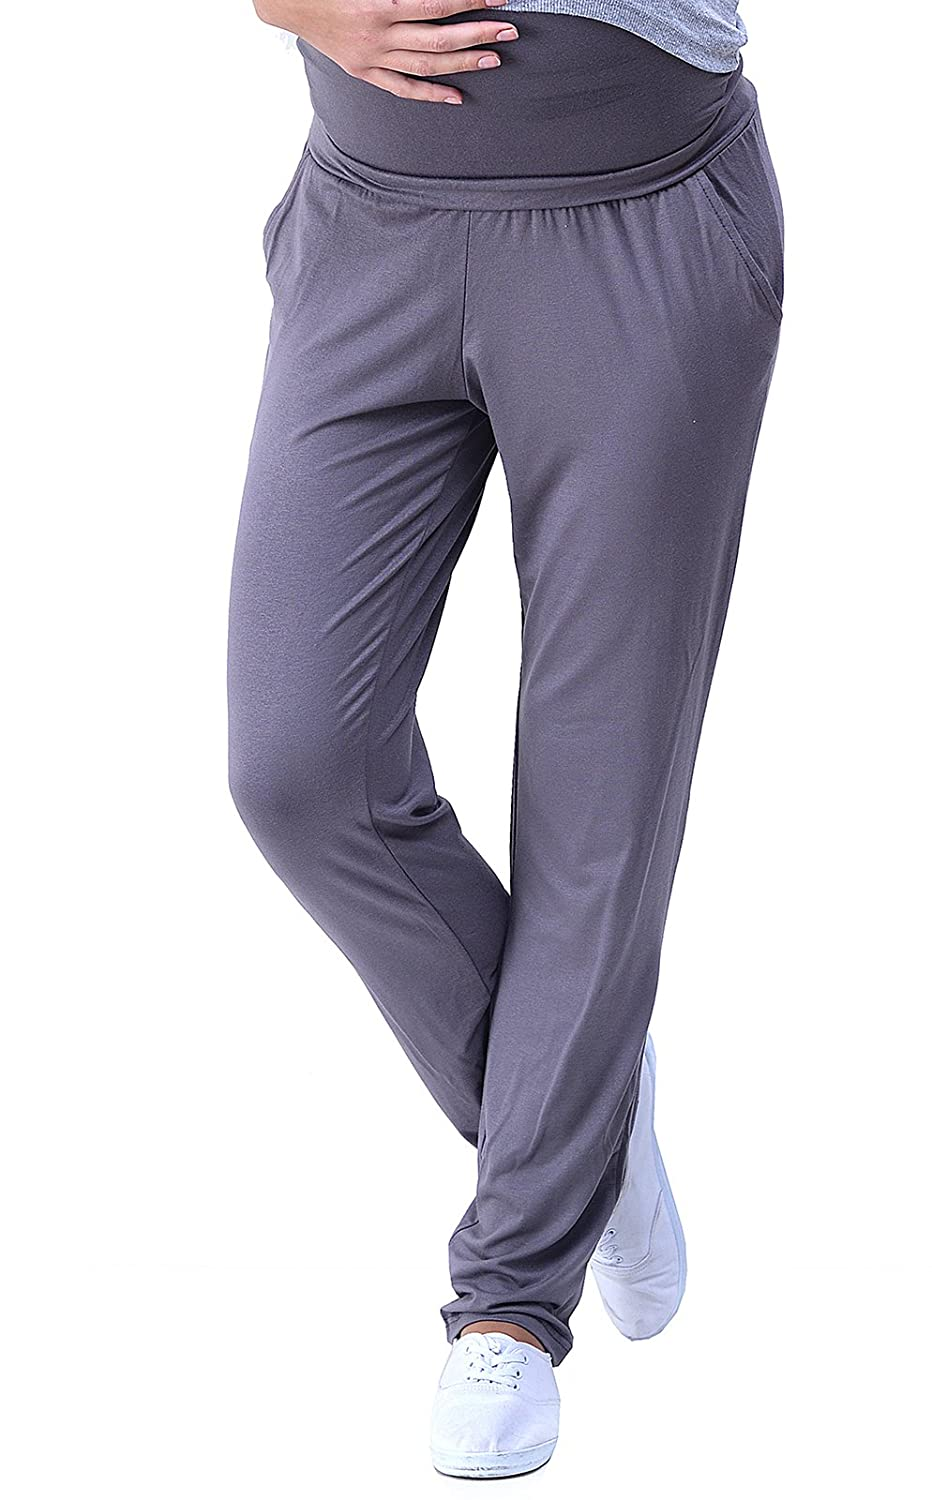 MijaCulture Maternity Casual Light Comfortable Trousers Pants Over Bump 4092